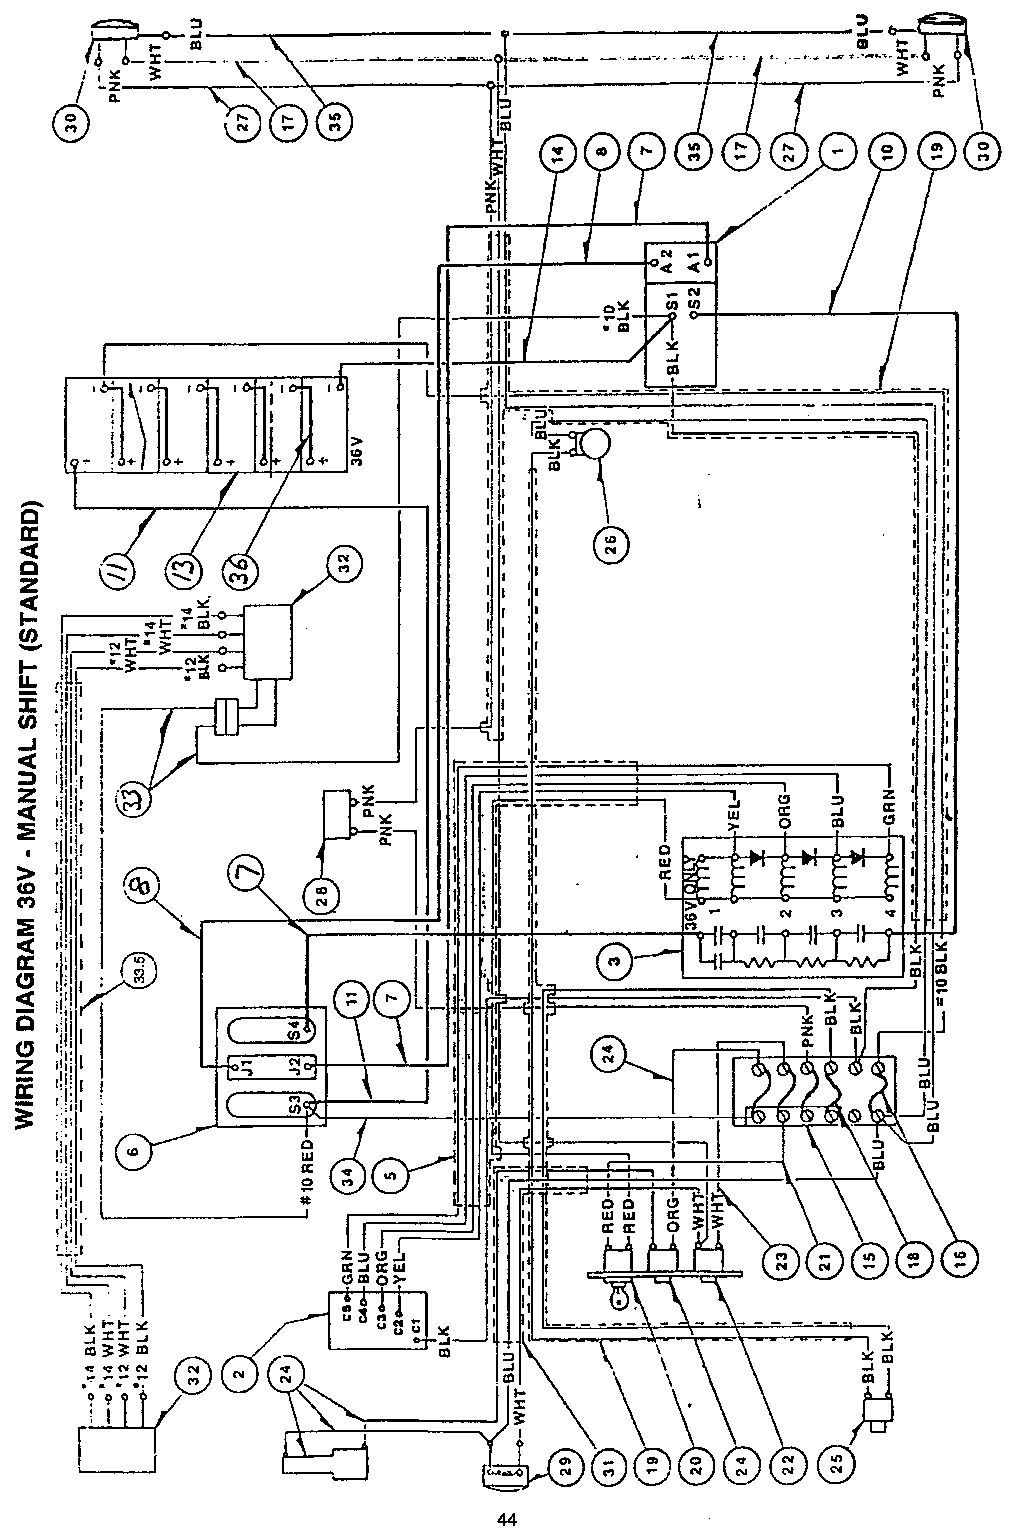 wiring diagram ez go workhorse mc400e